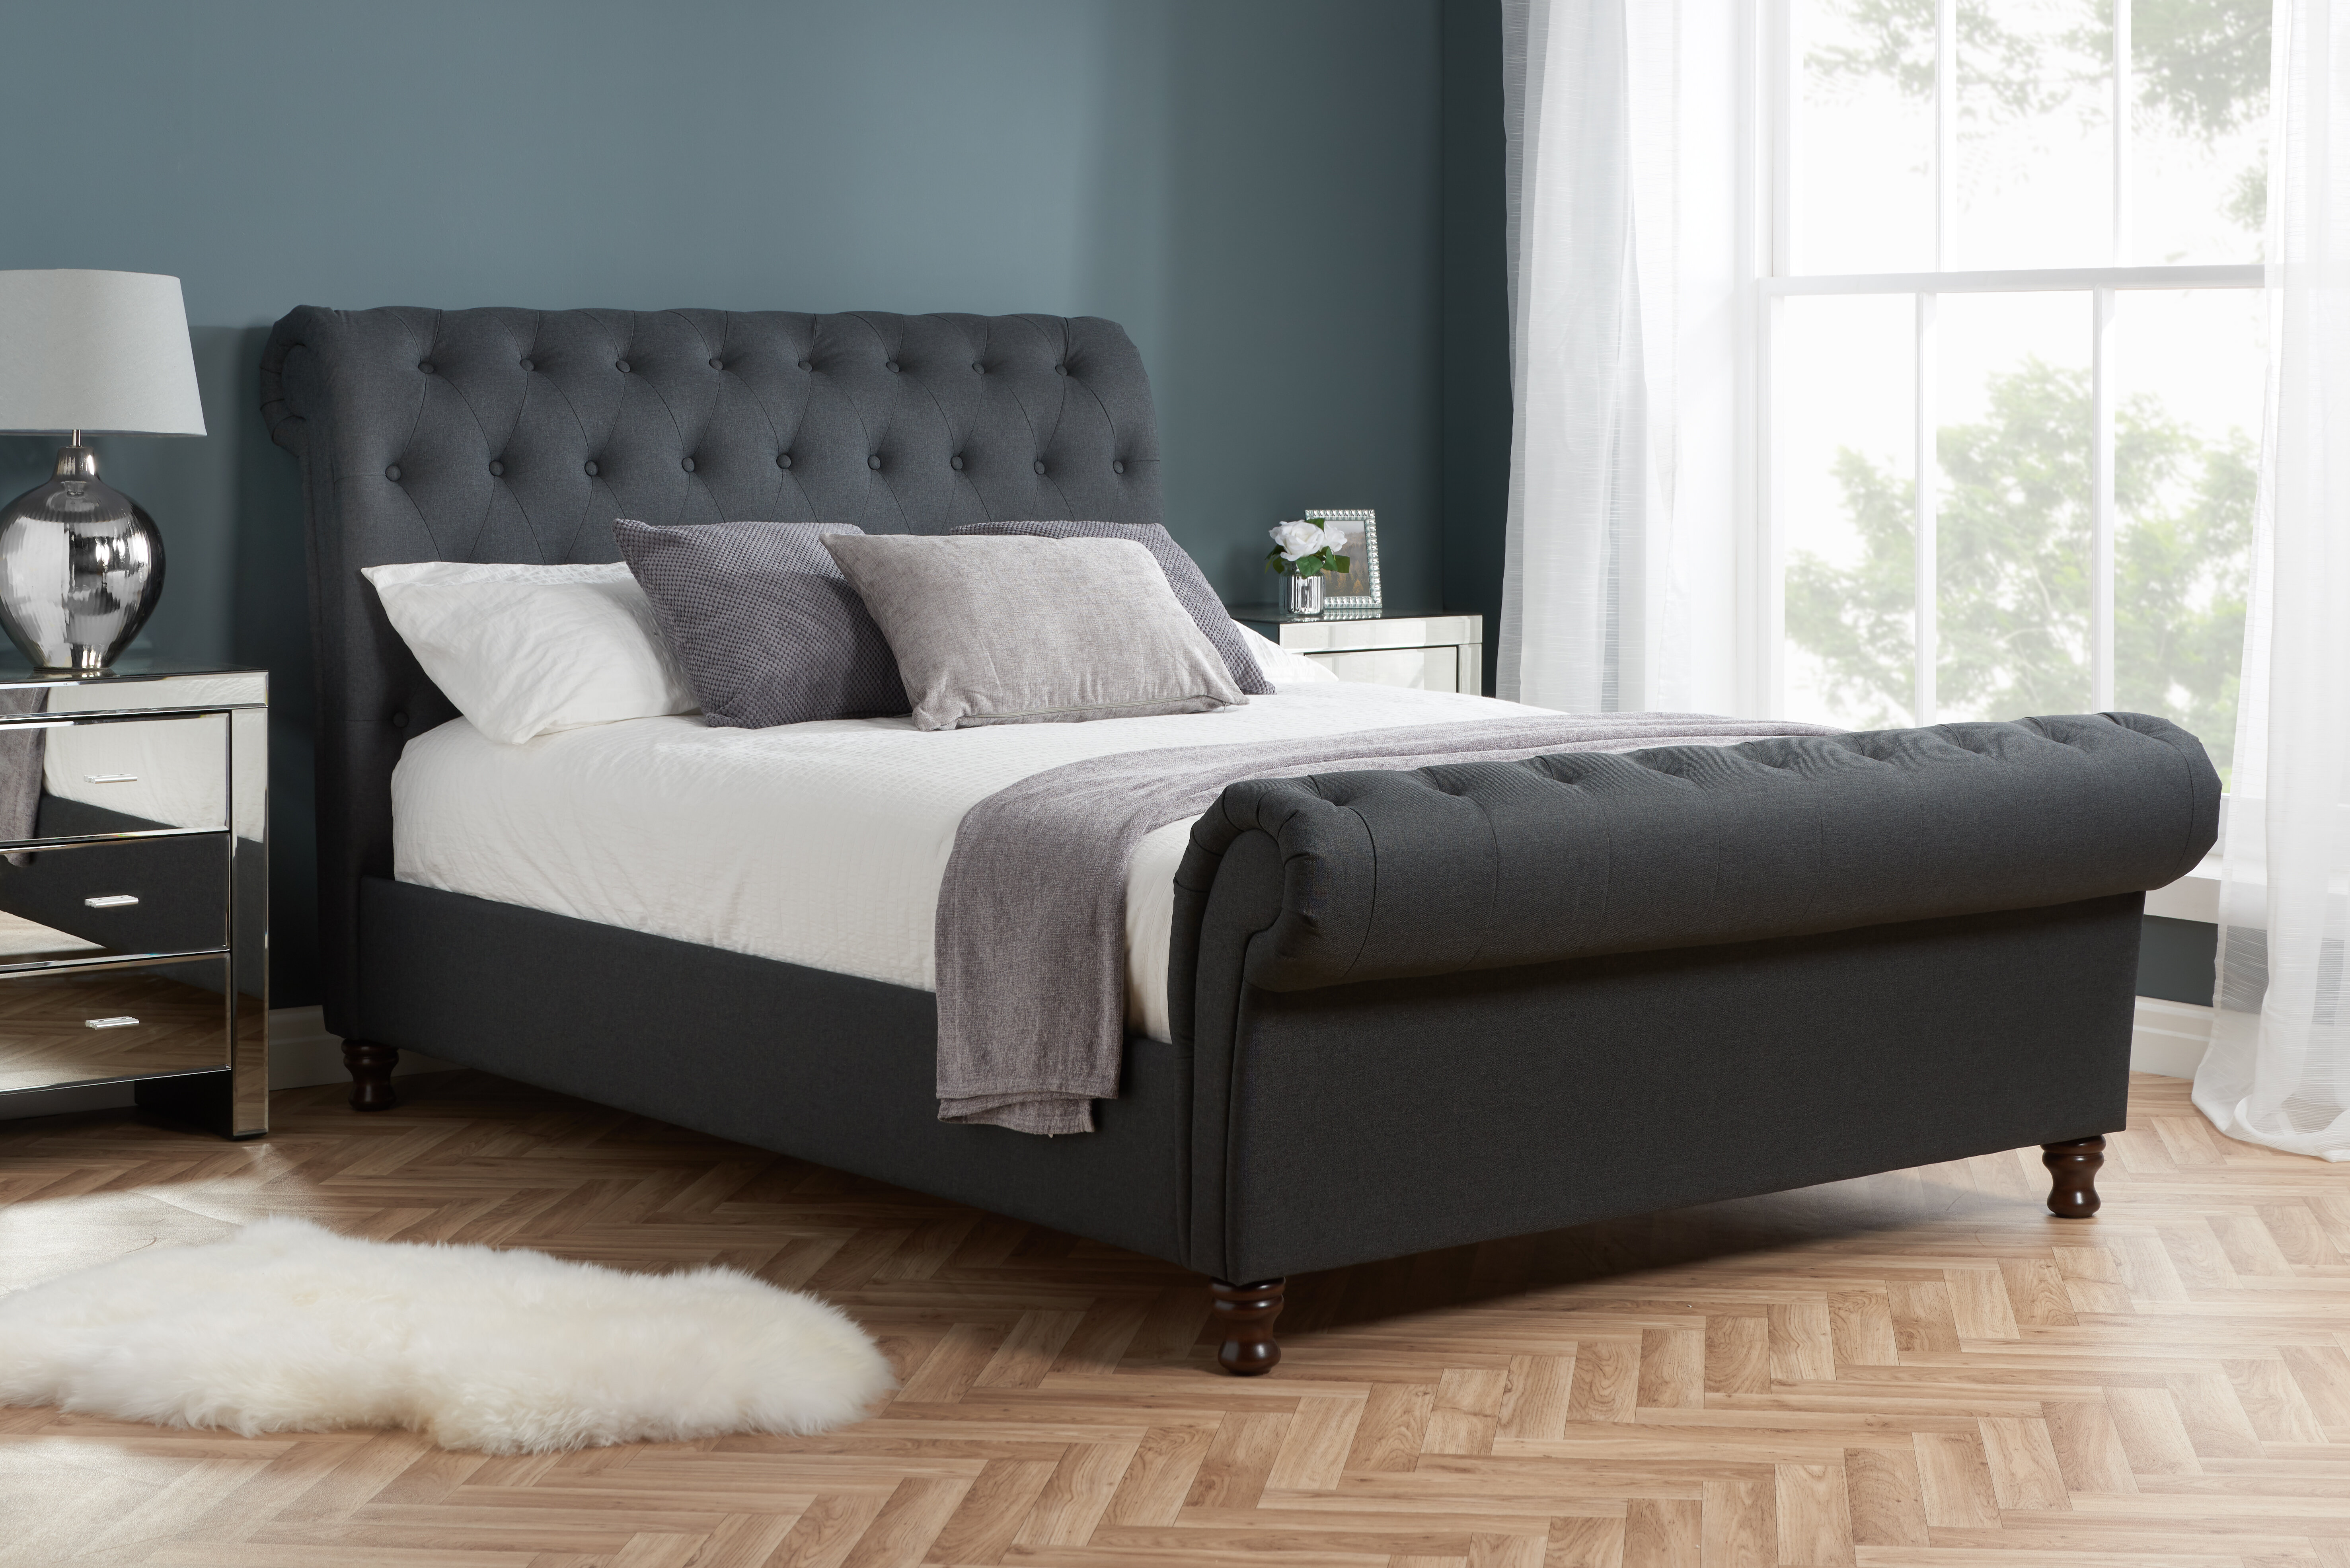 - Ophelia & Co. Gaskell Upholstered Sleigh Bed & Reviews Wayfair.co.uk